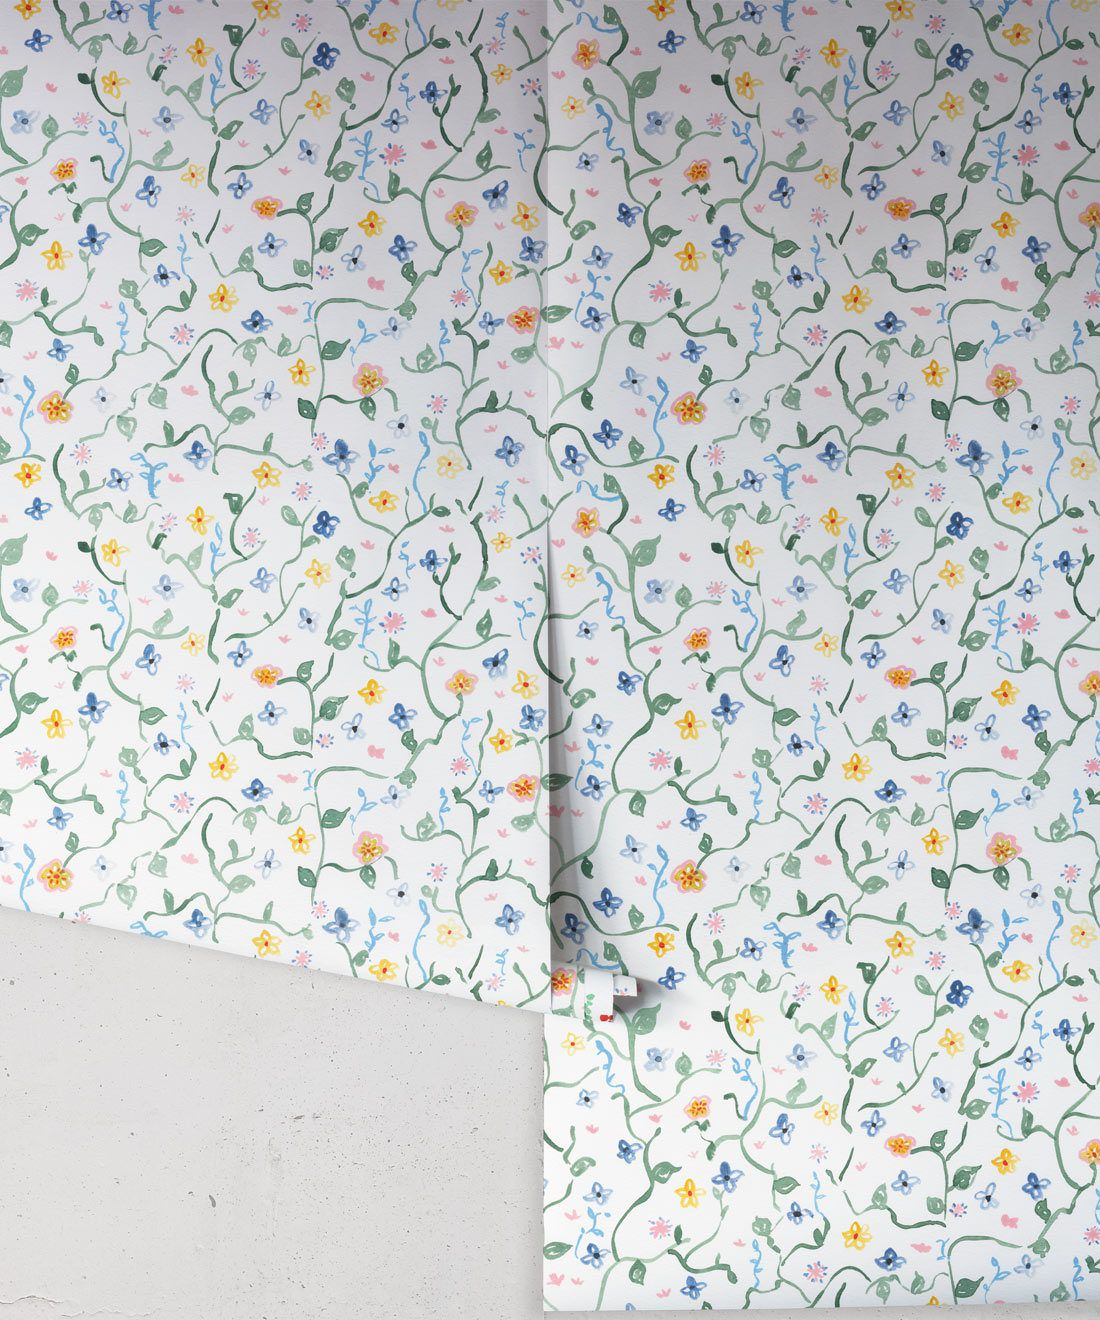 Wild Garden • Dainty Floral Wallpaper • Milton & King USA • Georgia MacMillan • Childrens Wallpaper • Nursery Wallpaper